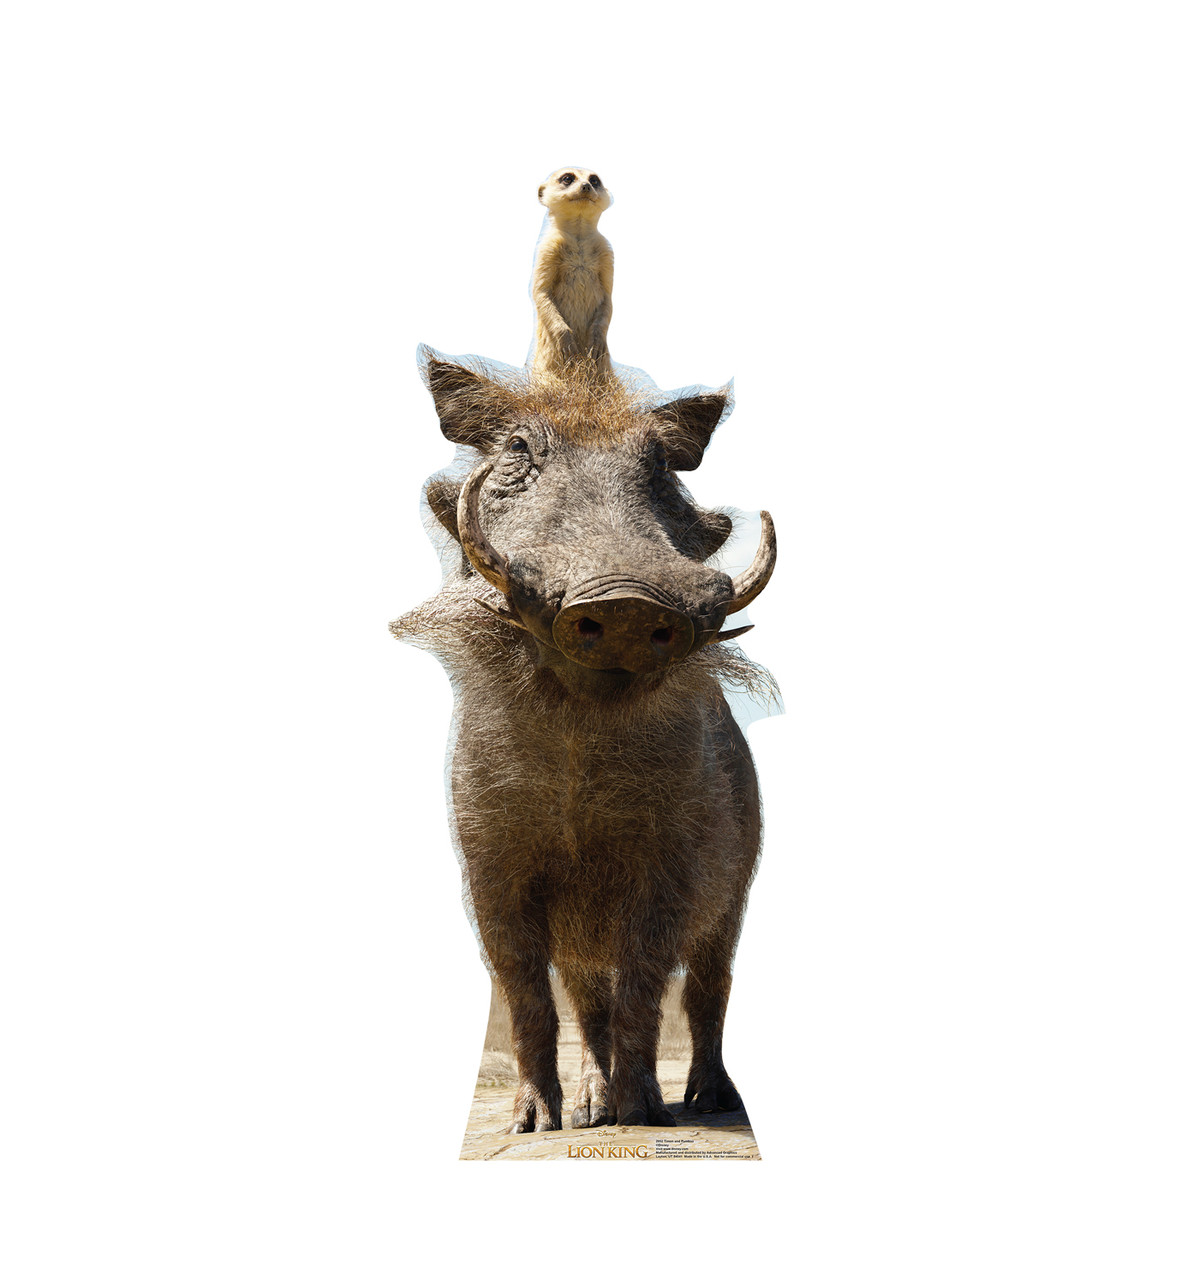 Life-size cardboard standee of Timon and Pumbaa from Disney's live action film The Lion King Front View